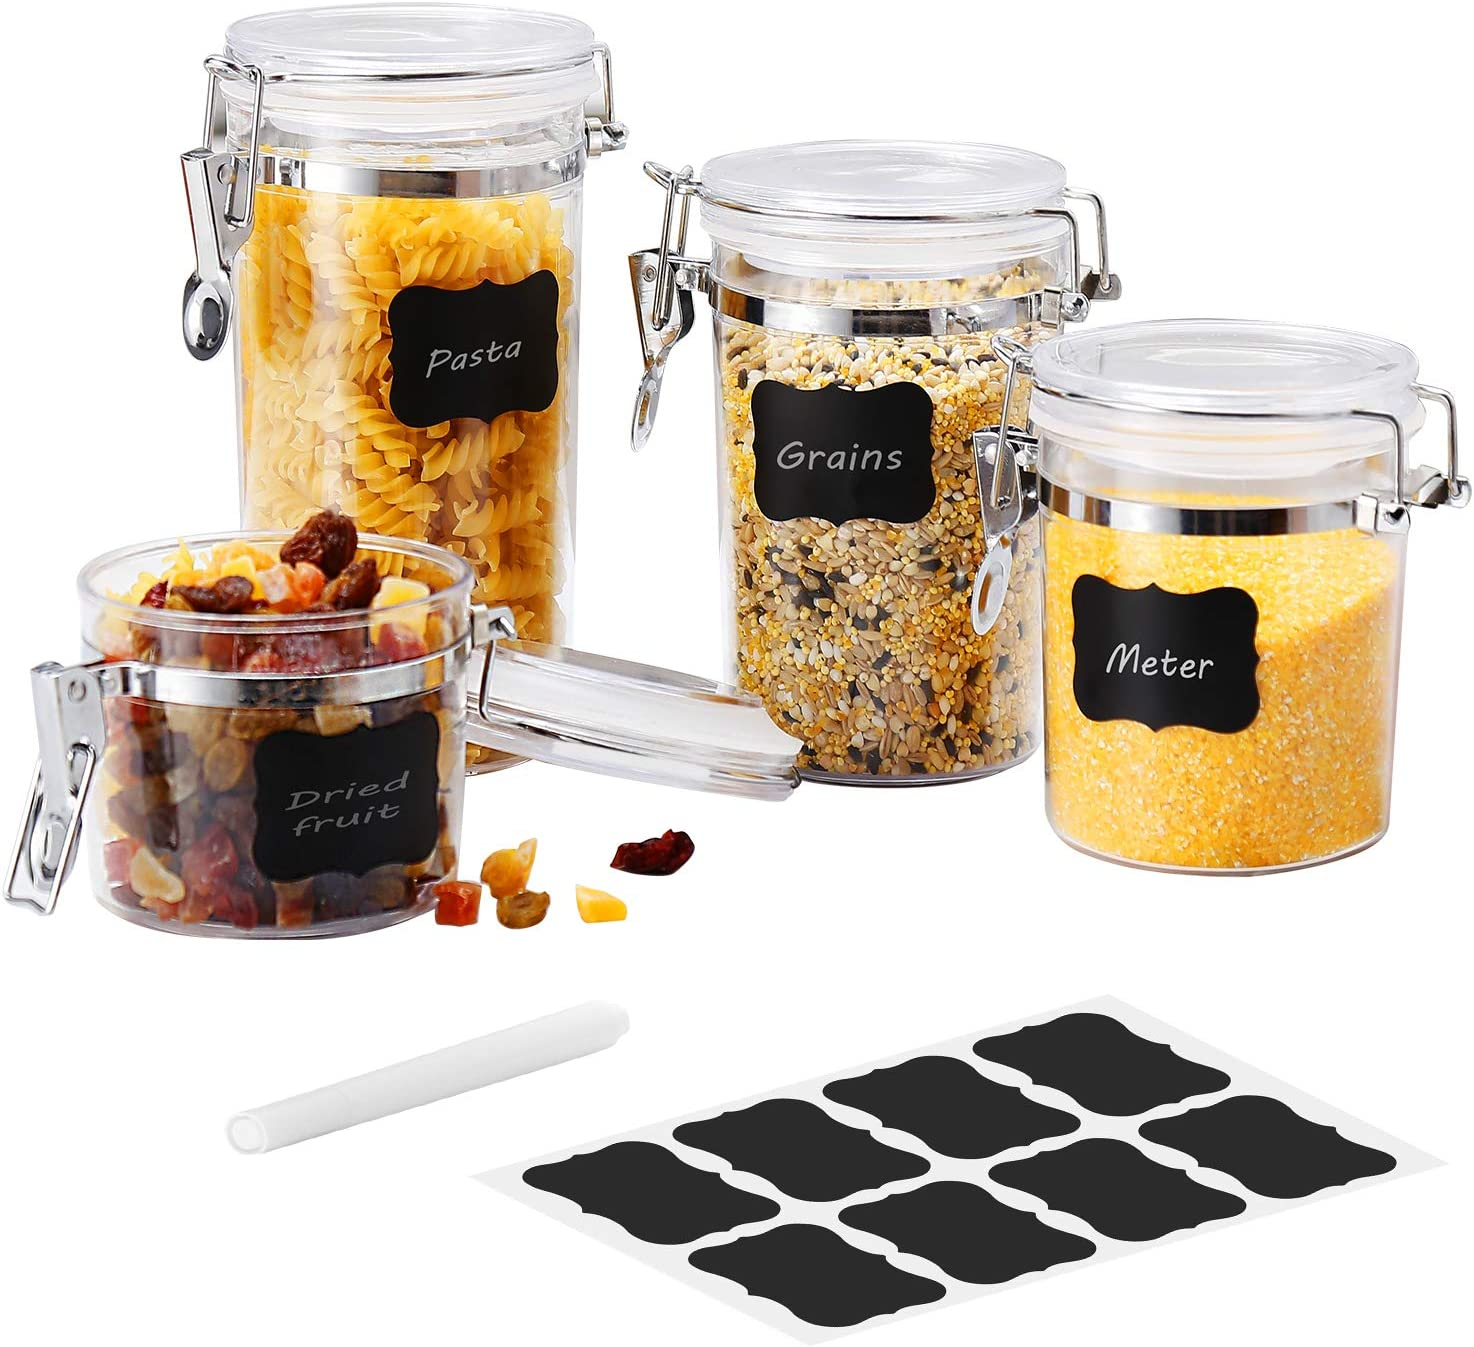 Airtight Acrylic Canister Set of 4 - Farochy Food Storage Jar, Airtight Food Storage Containers with Locking Clamp, Clear Jars for Flour, Tea, Sugar, Coffee, Candy (Labels & Chalk Included)